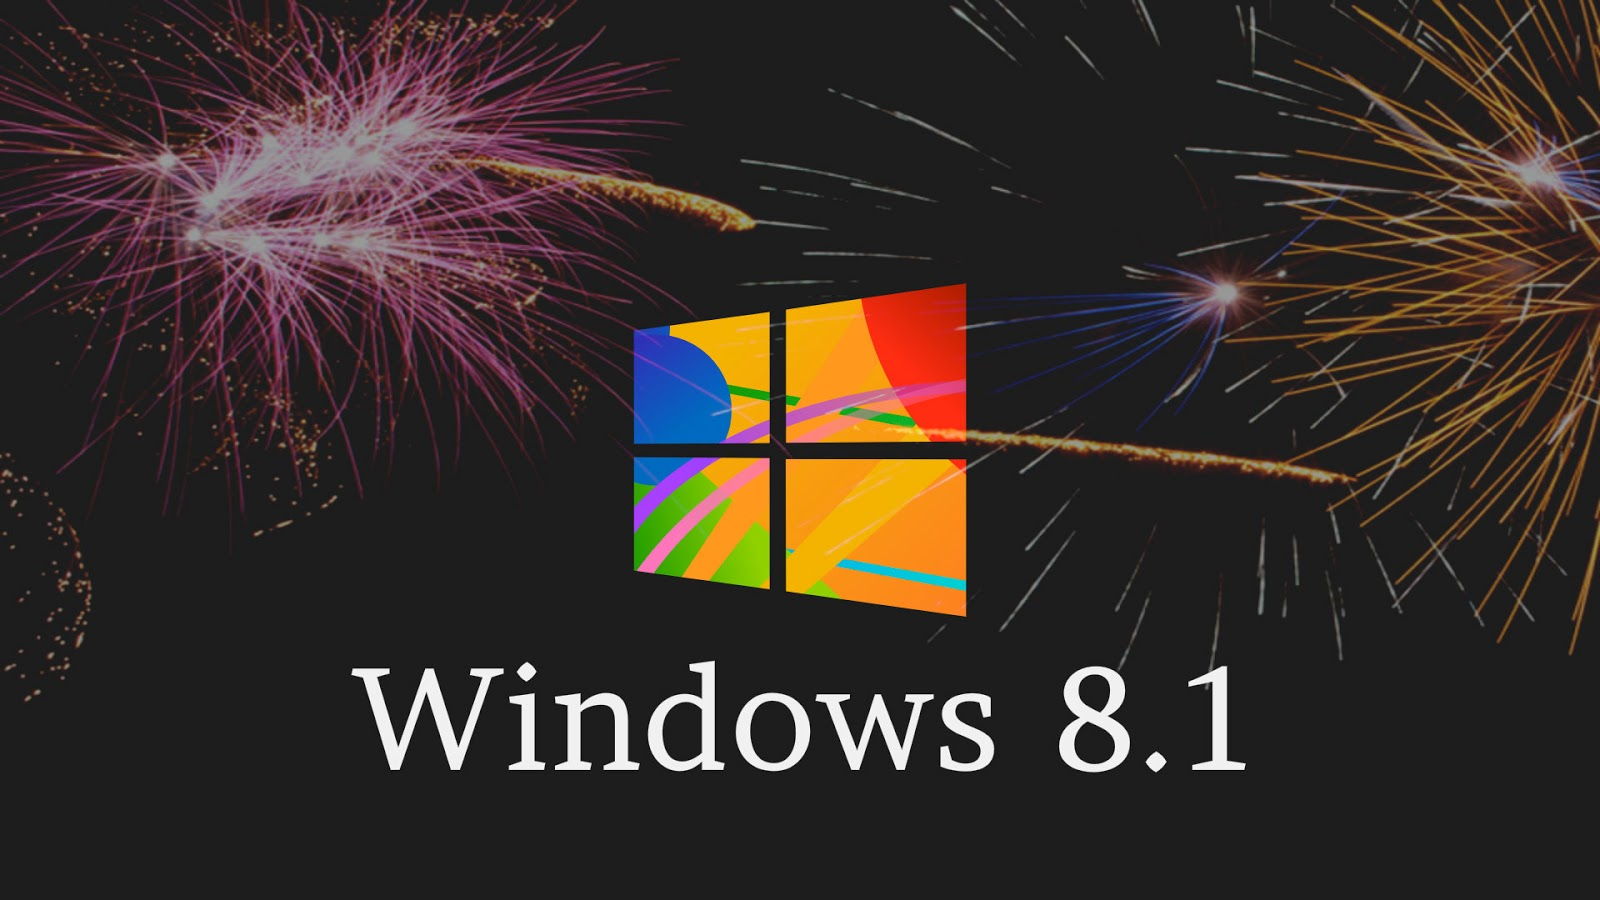 Windows 8.1 update will be releasing in October 2013.